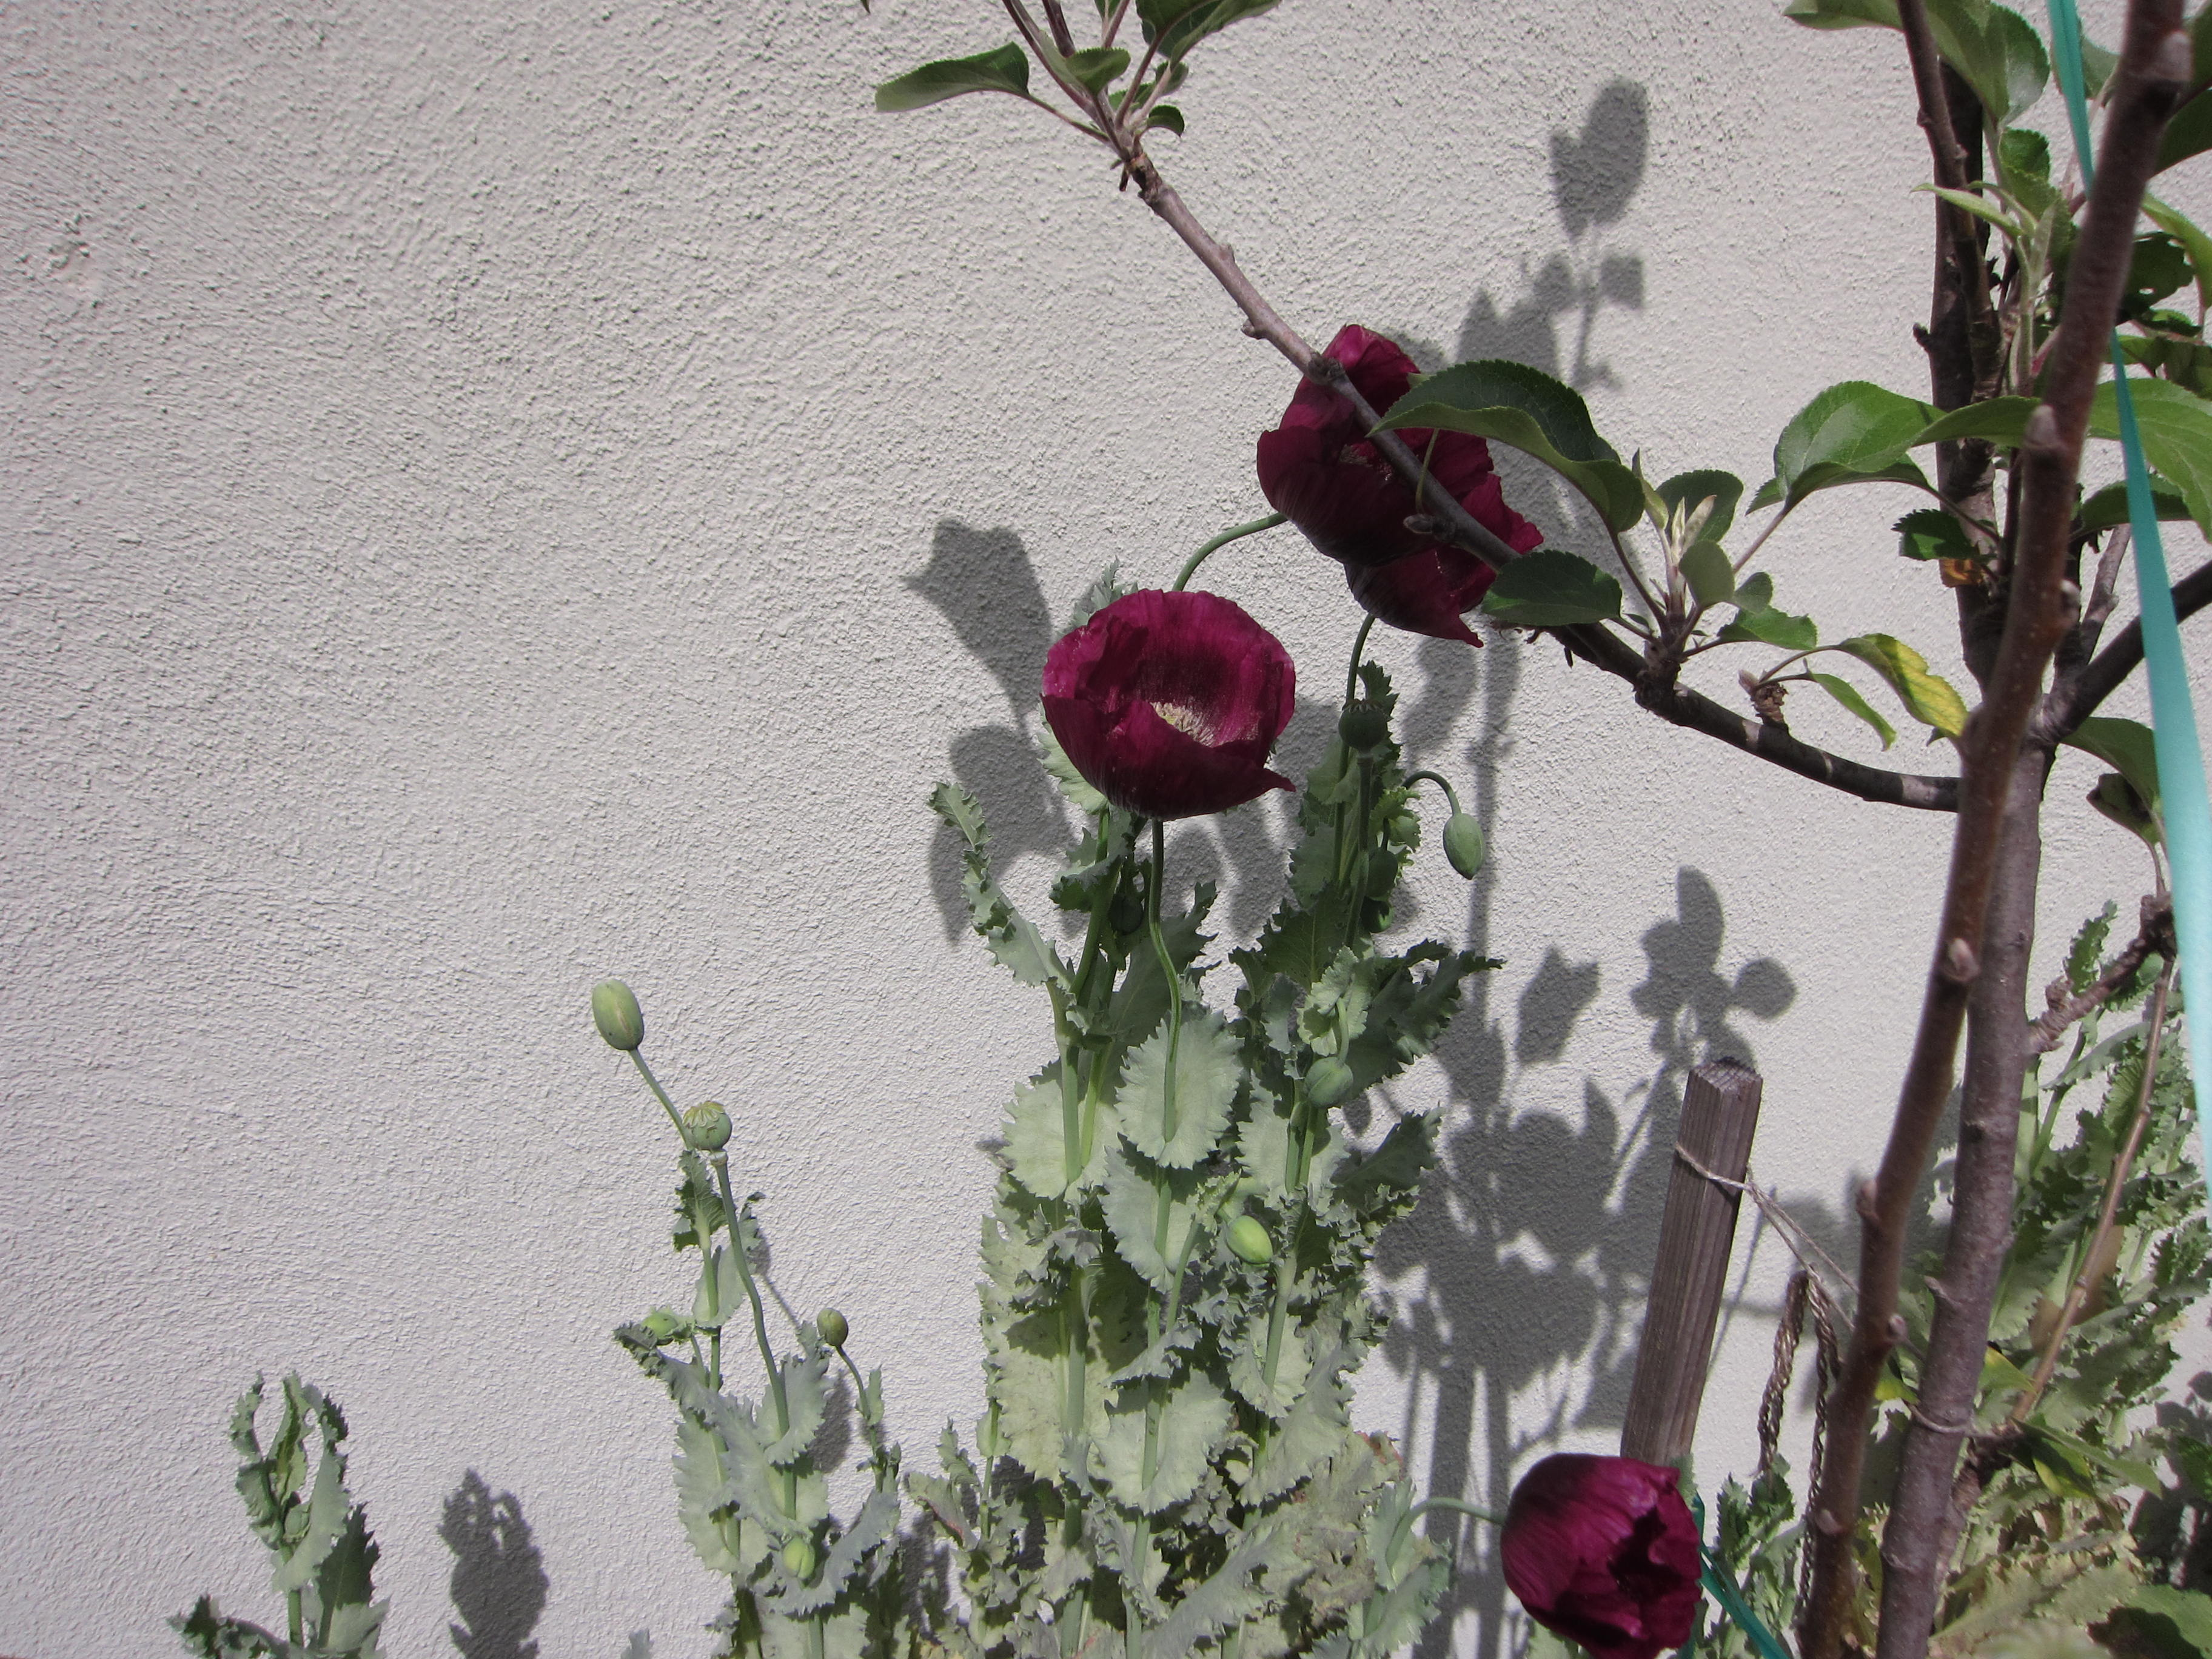 Lauren's Grape poppies intertwine with a Fuji apple tree. We'll let the seeds scatter for more poppies next year.